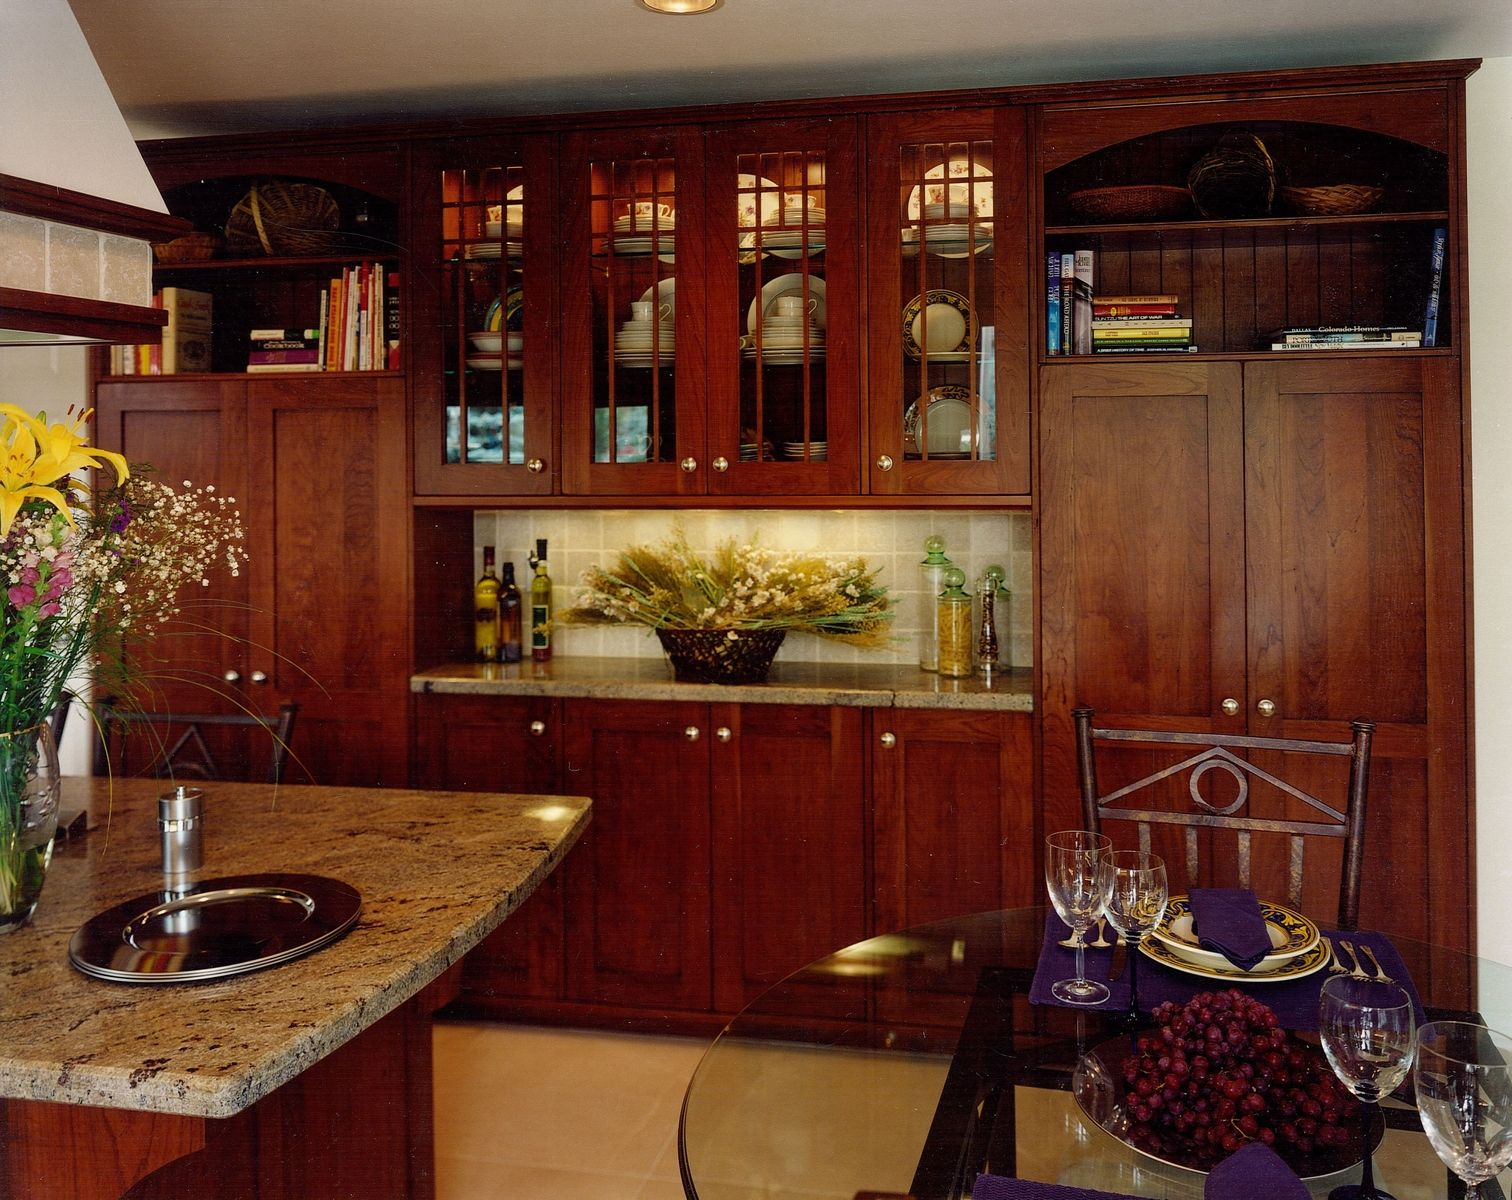 Kitchen Cabinets Solid Wood Construction Custom Made Arts And Crafts Kitchen Remodel Of Cherry Wood